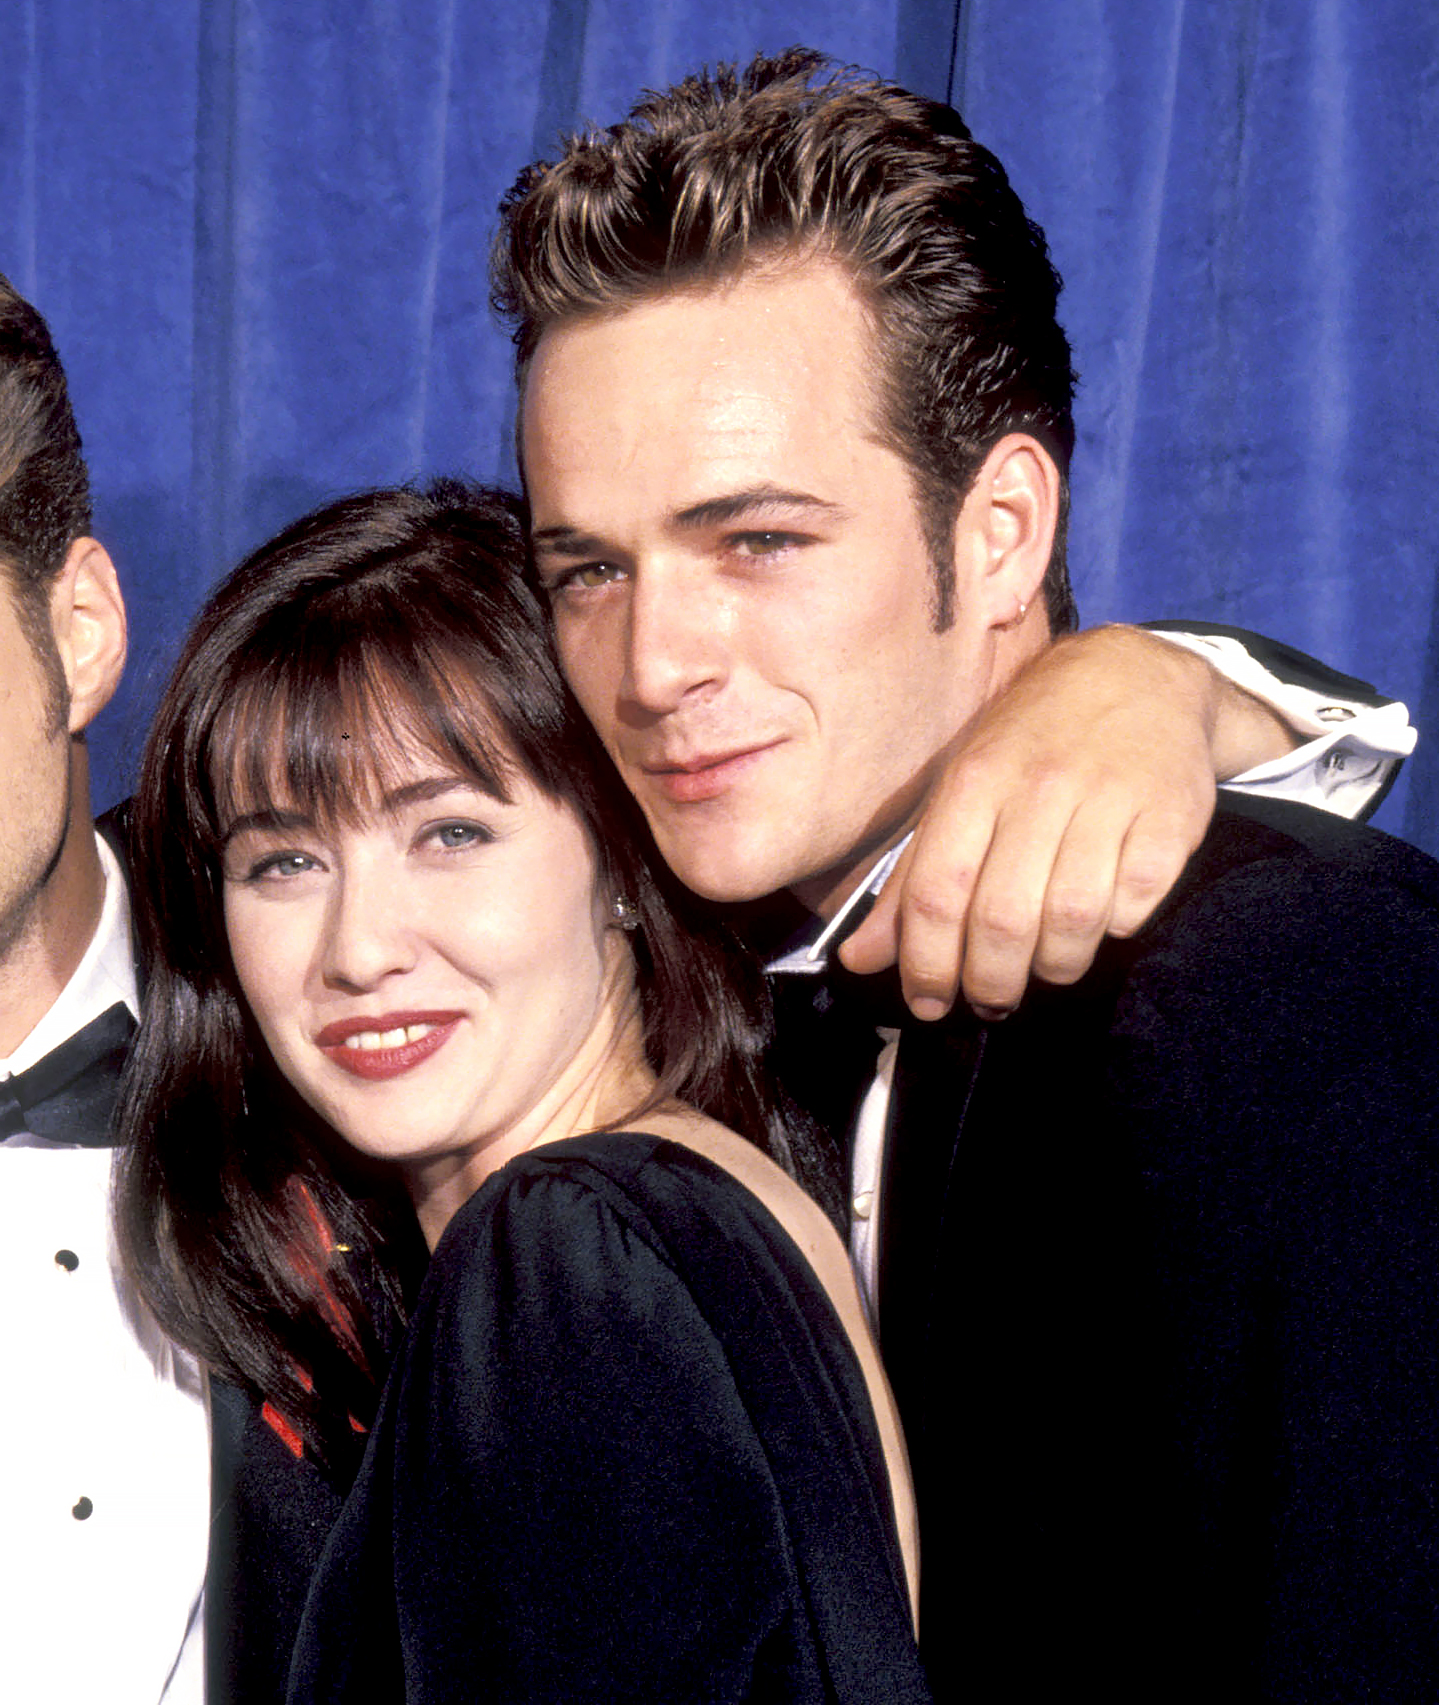 Shannen-Doherty-and-Luke-Perry-90210-reunion - Shannen Doherty and Luke Perry at the Pasadena Civic Center in Pasadena, California in 1991.